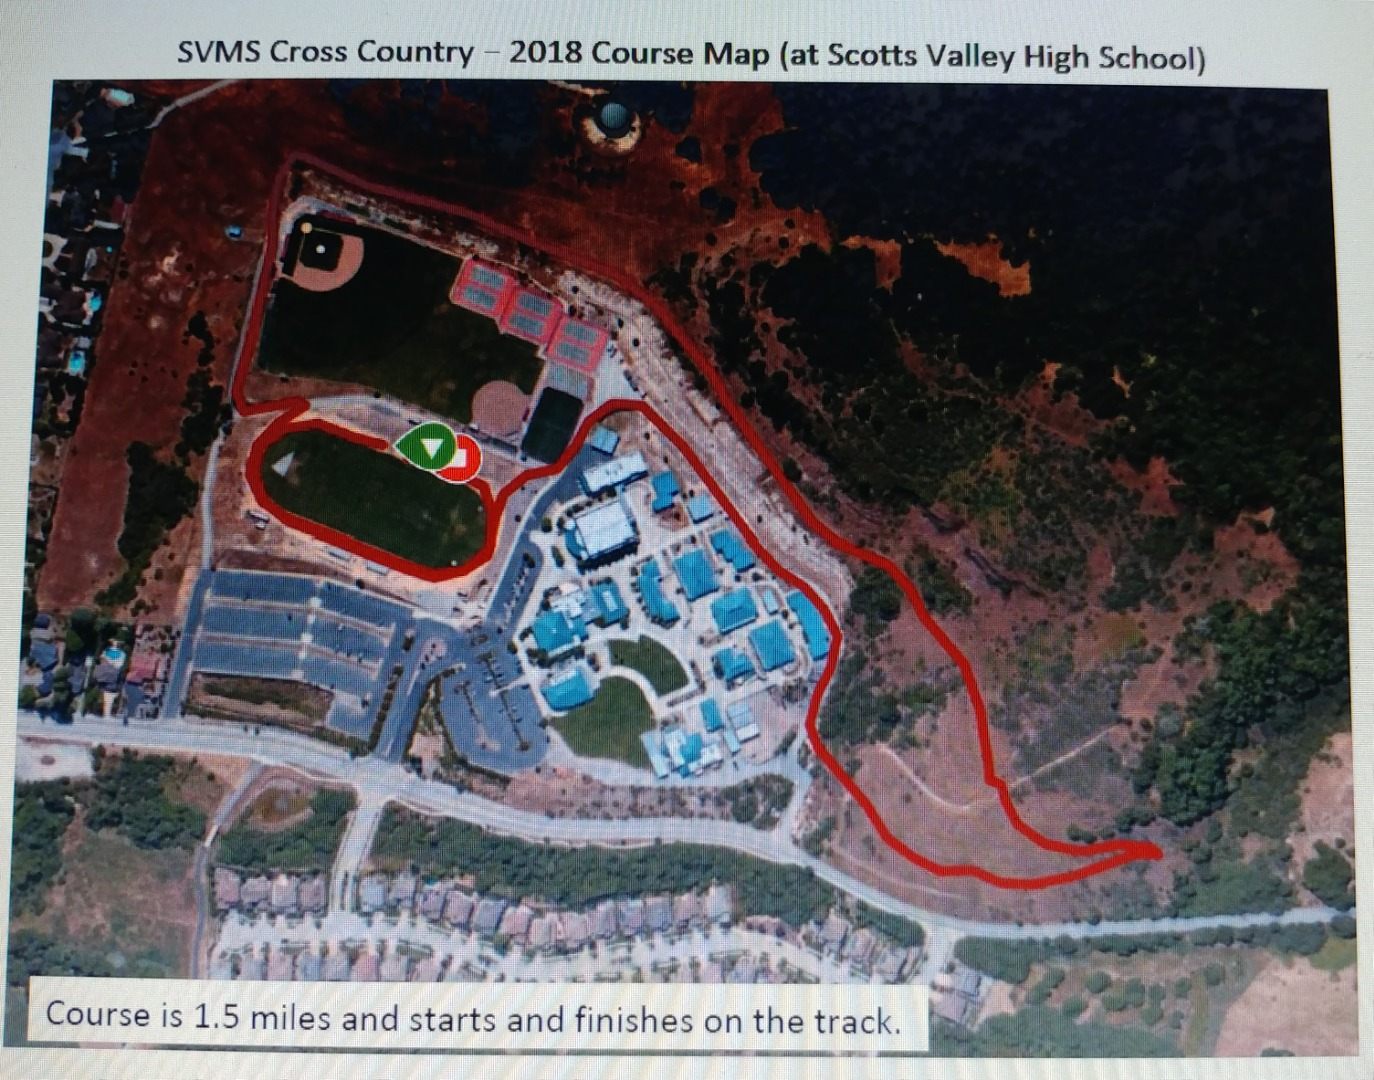 Scotts Valley High School Course